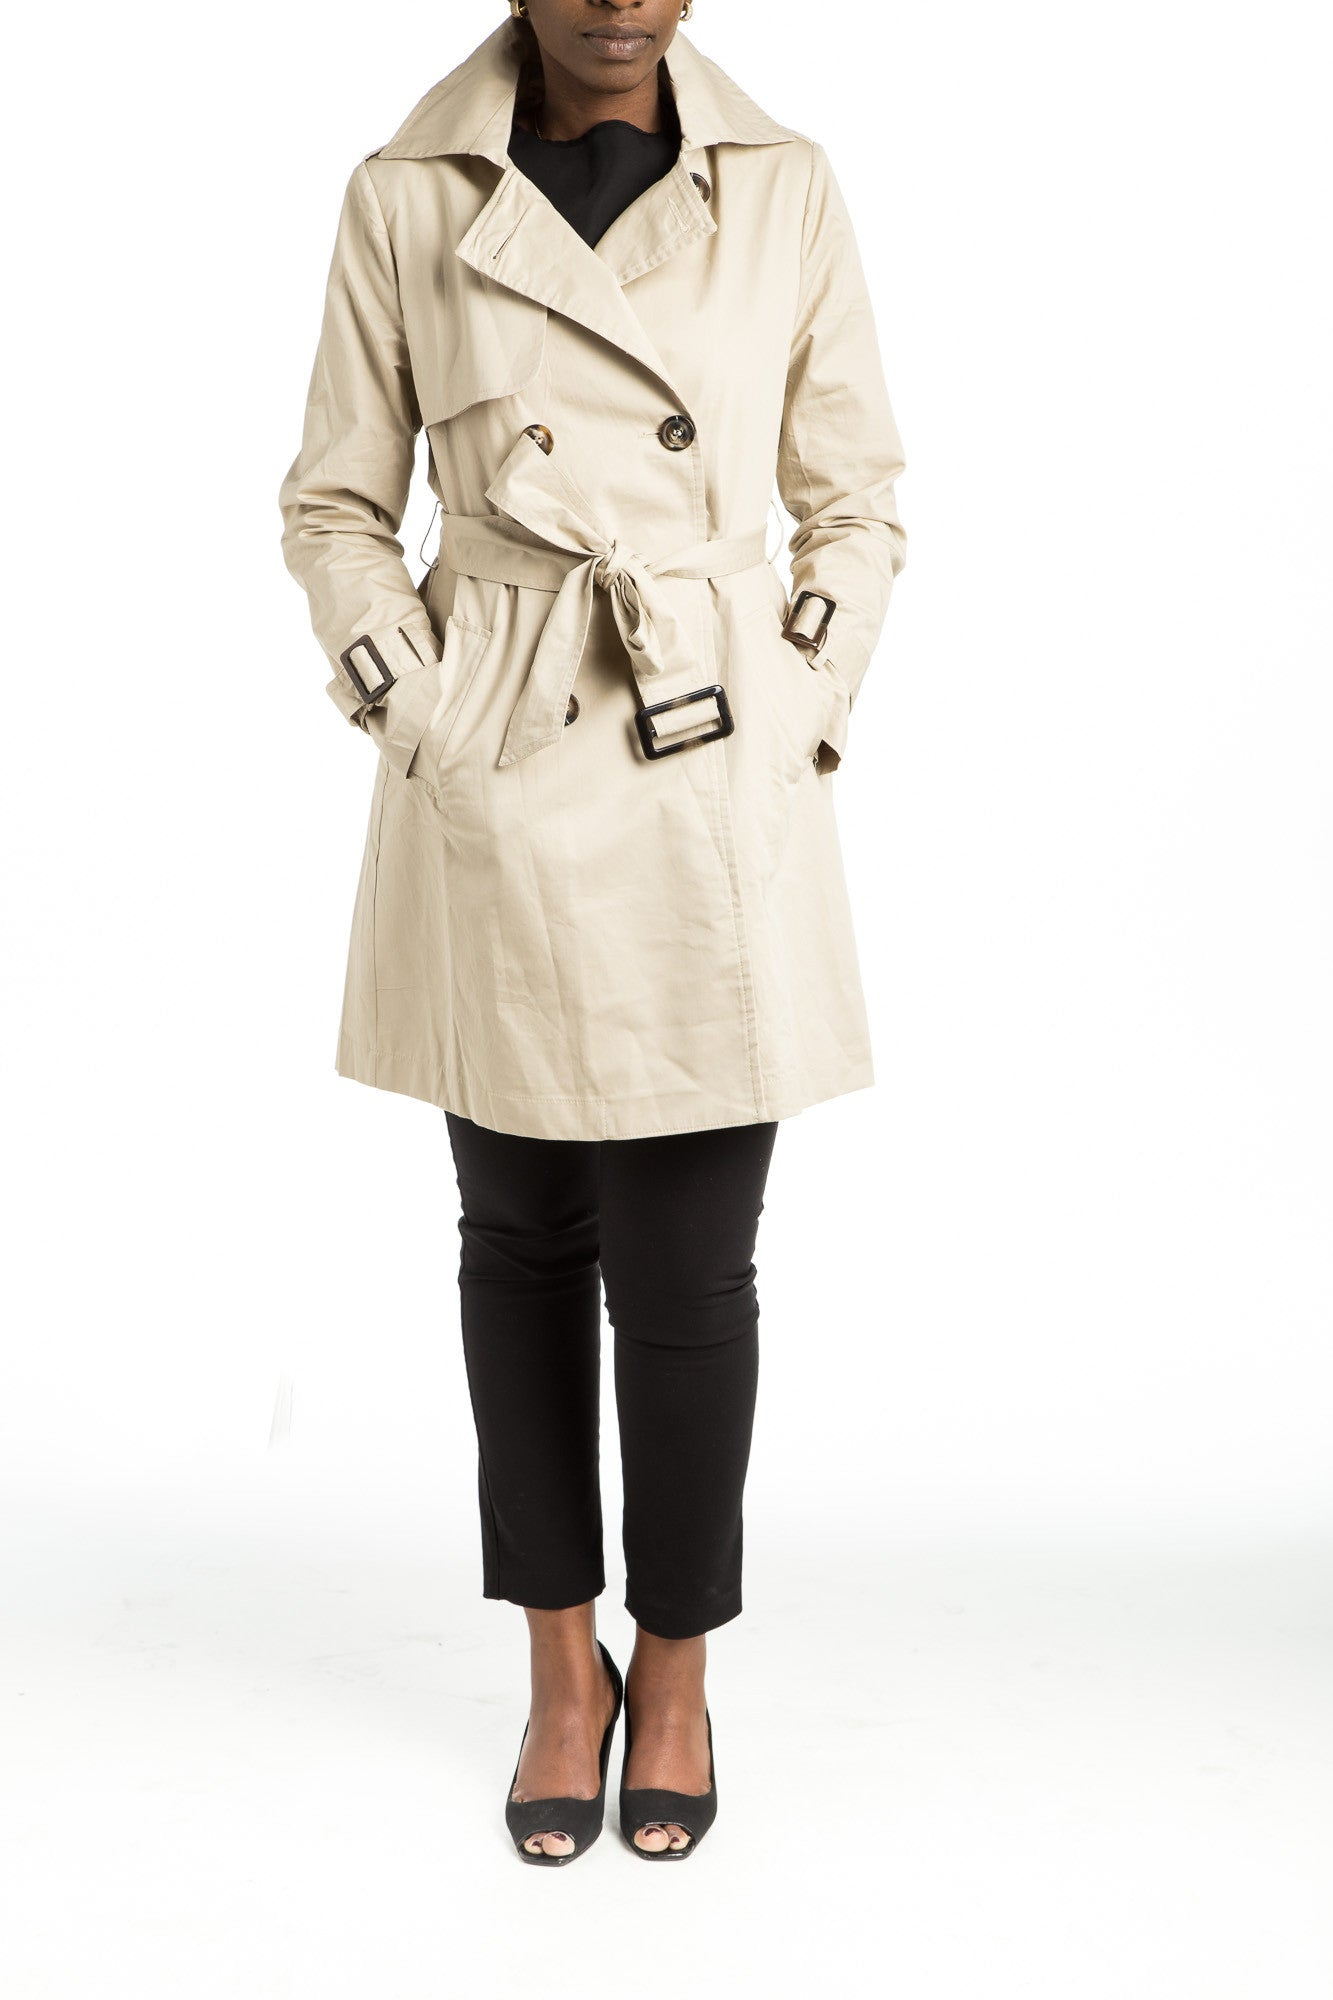 SHERA Trench Coat - 2 colors available - Mademoiselle Veste - 1